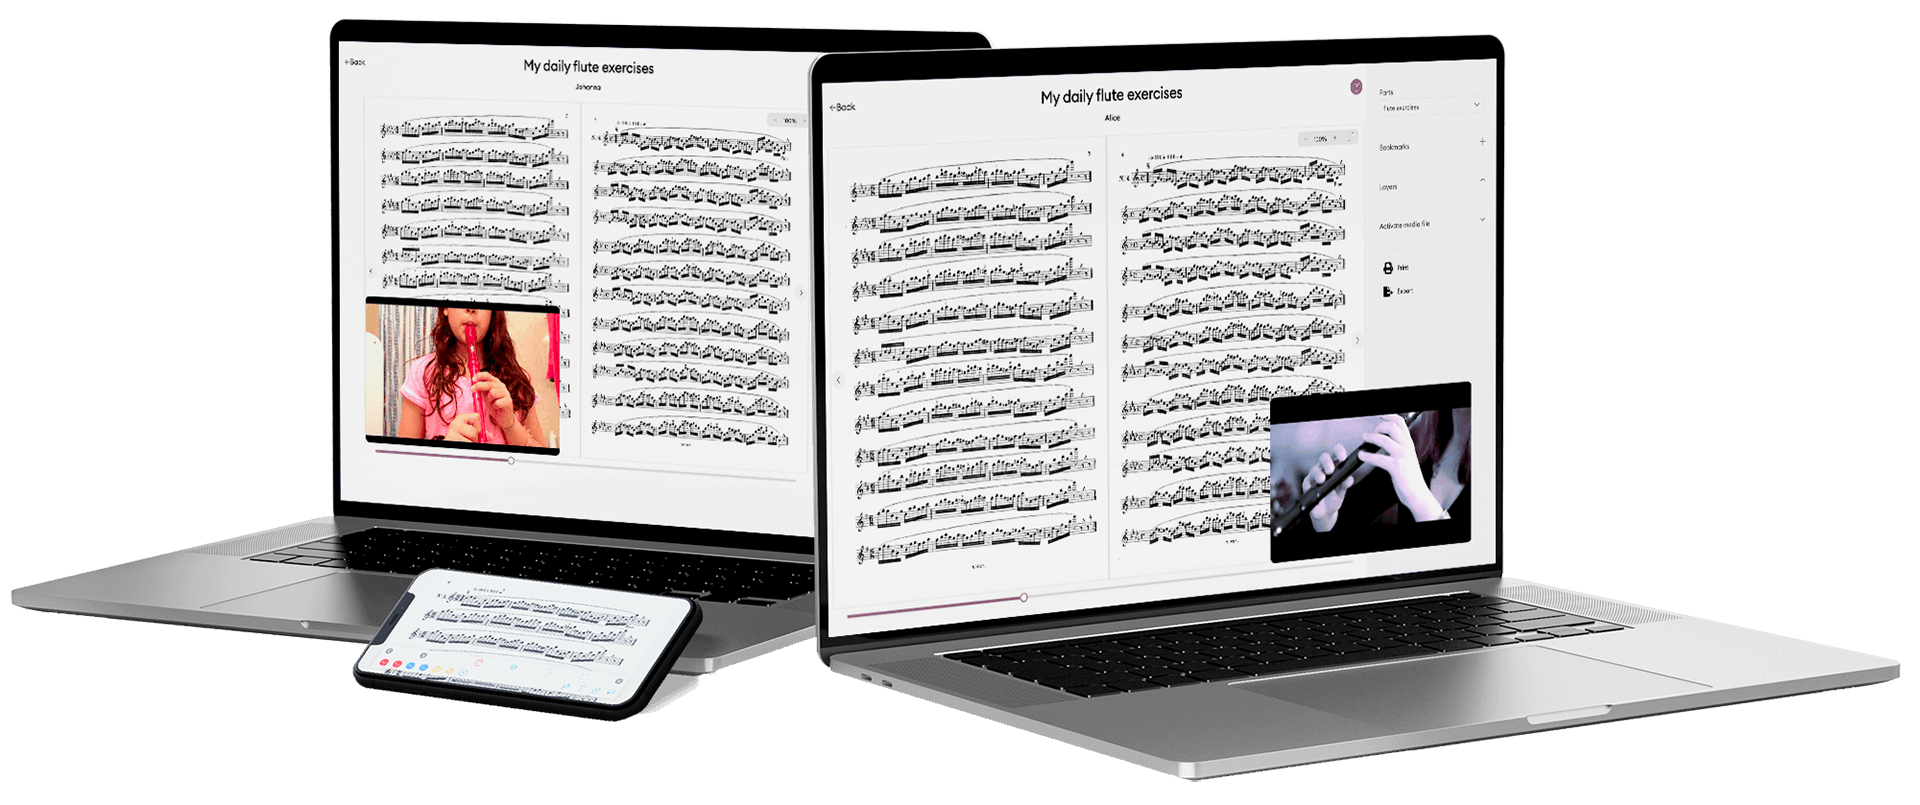 two mac books flute exercise